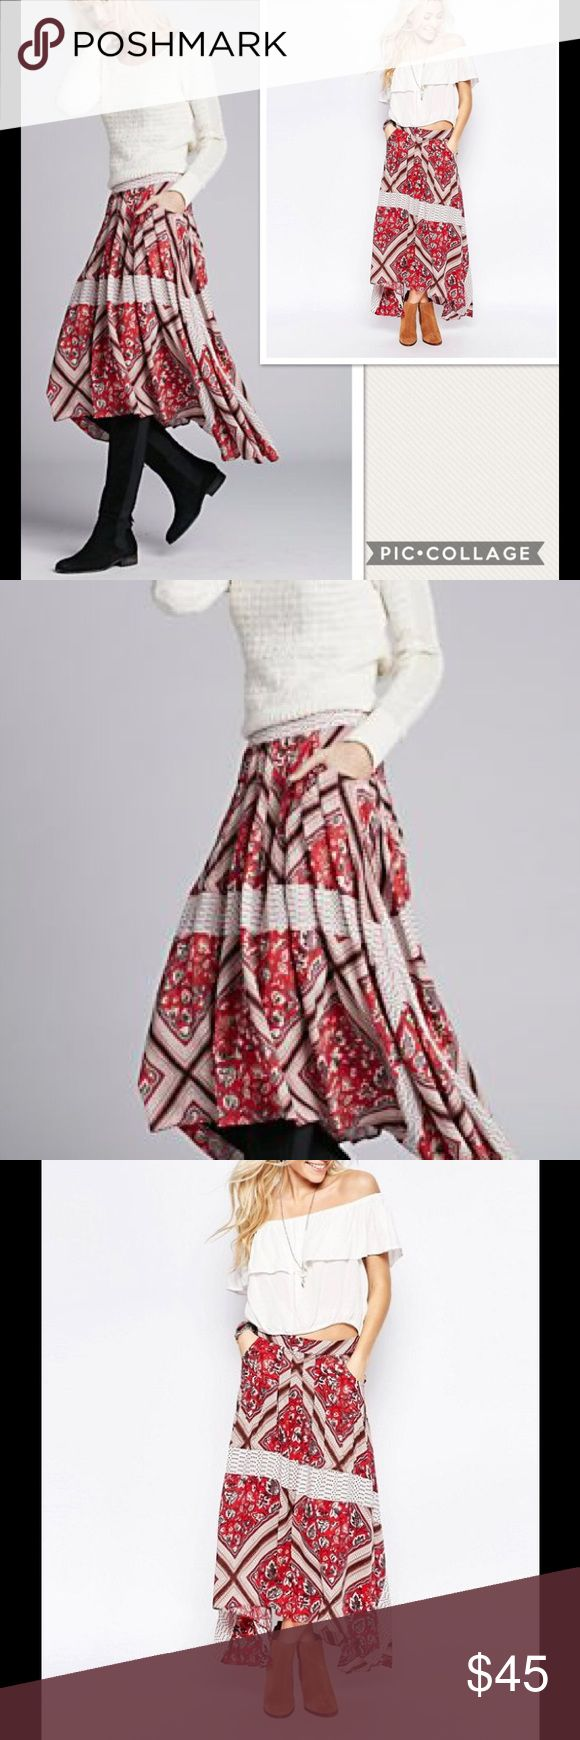 """NWT Free People Paradise Printed Midi Skirt Red An eclectic mix of florals and stripes converge on this flirty-meets-free-spirited skirt from Free People. Waist 30""""  Banded waist, pleated, side slit pockets Concealed zip back closure, printed, asymmetric handkerchief hem Rayon. Unlined.  Machine wash Free People Skirts Midi"""